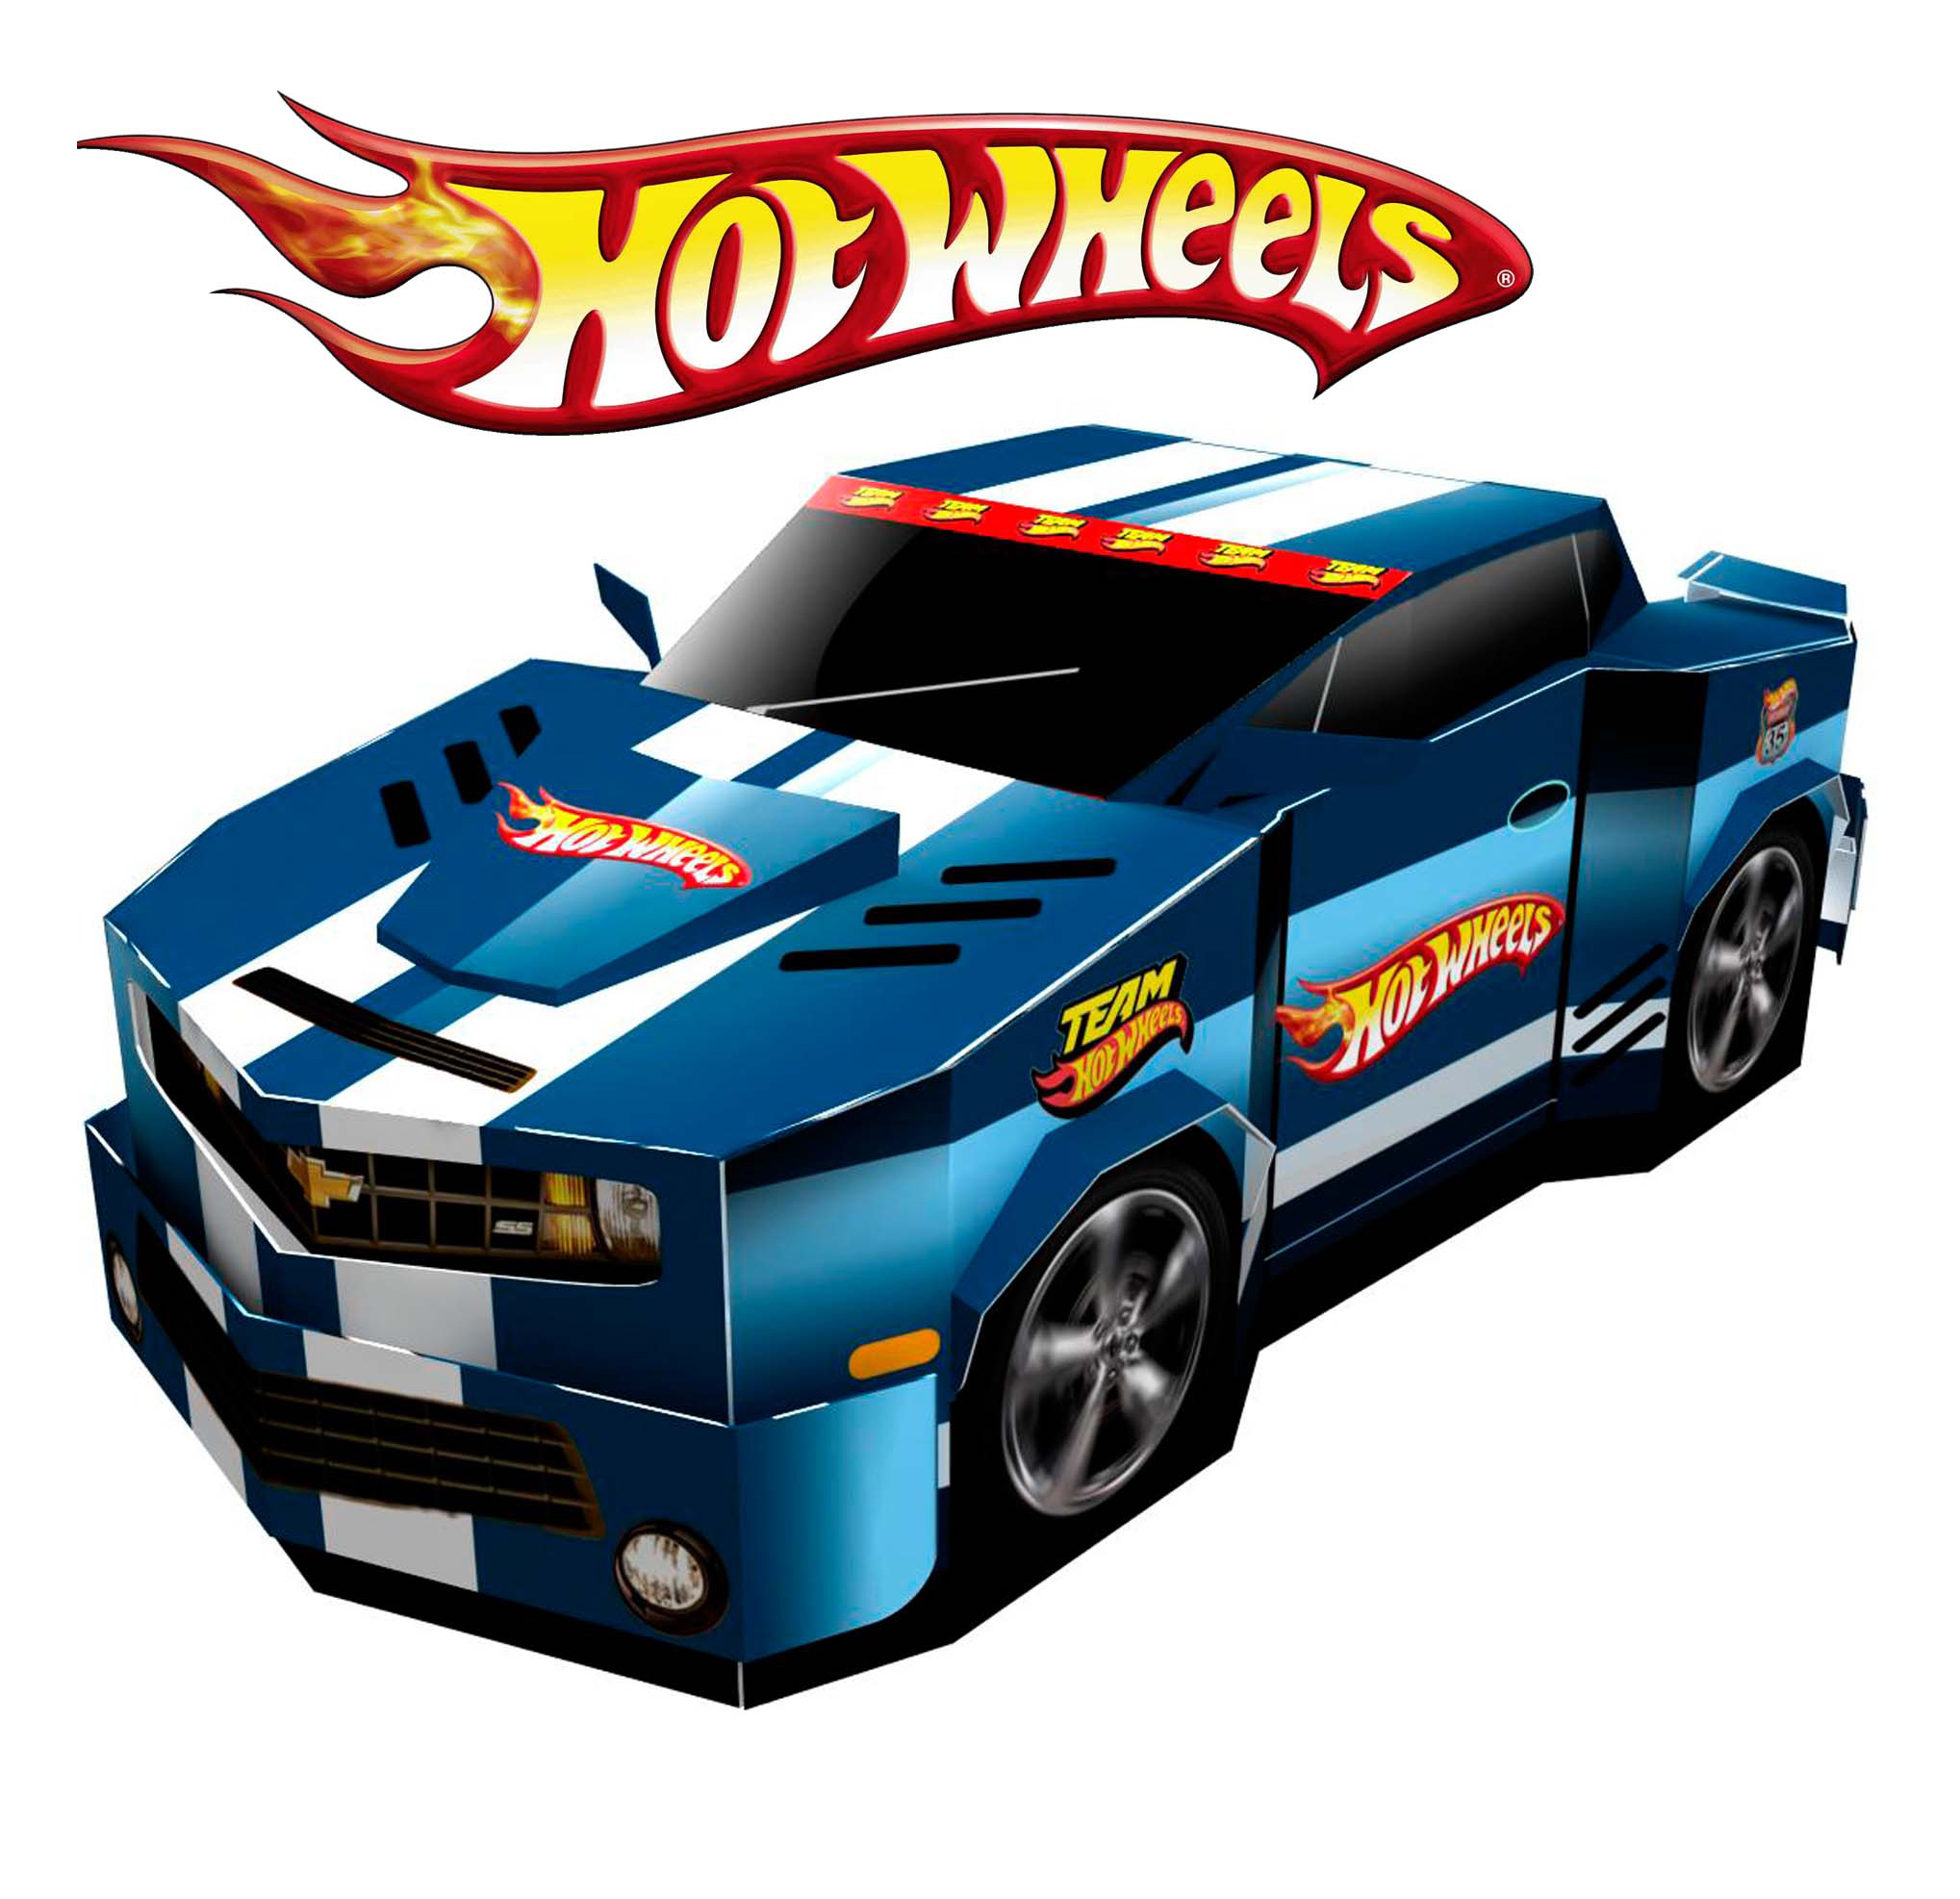 Beau Dessin Coloriage Voitures Hot Wheels